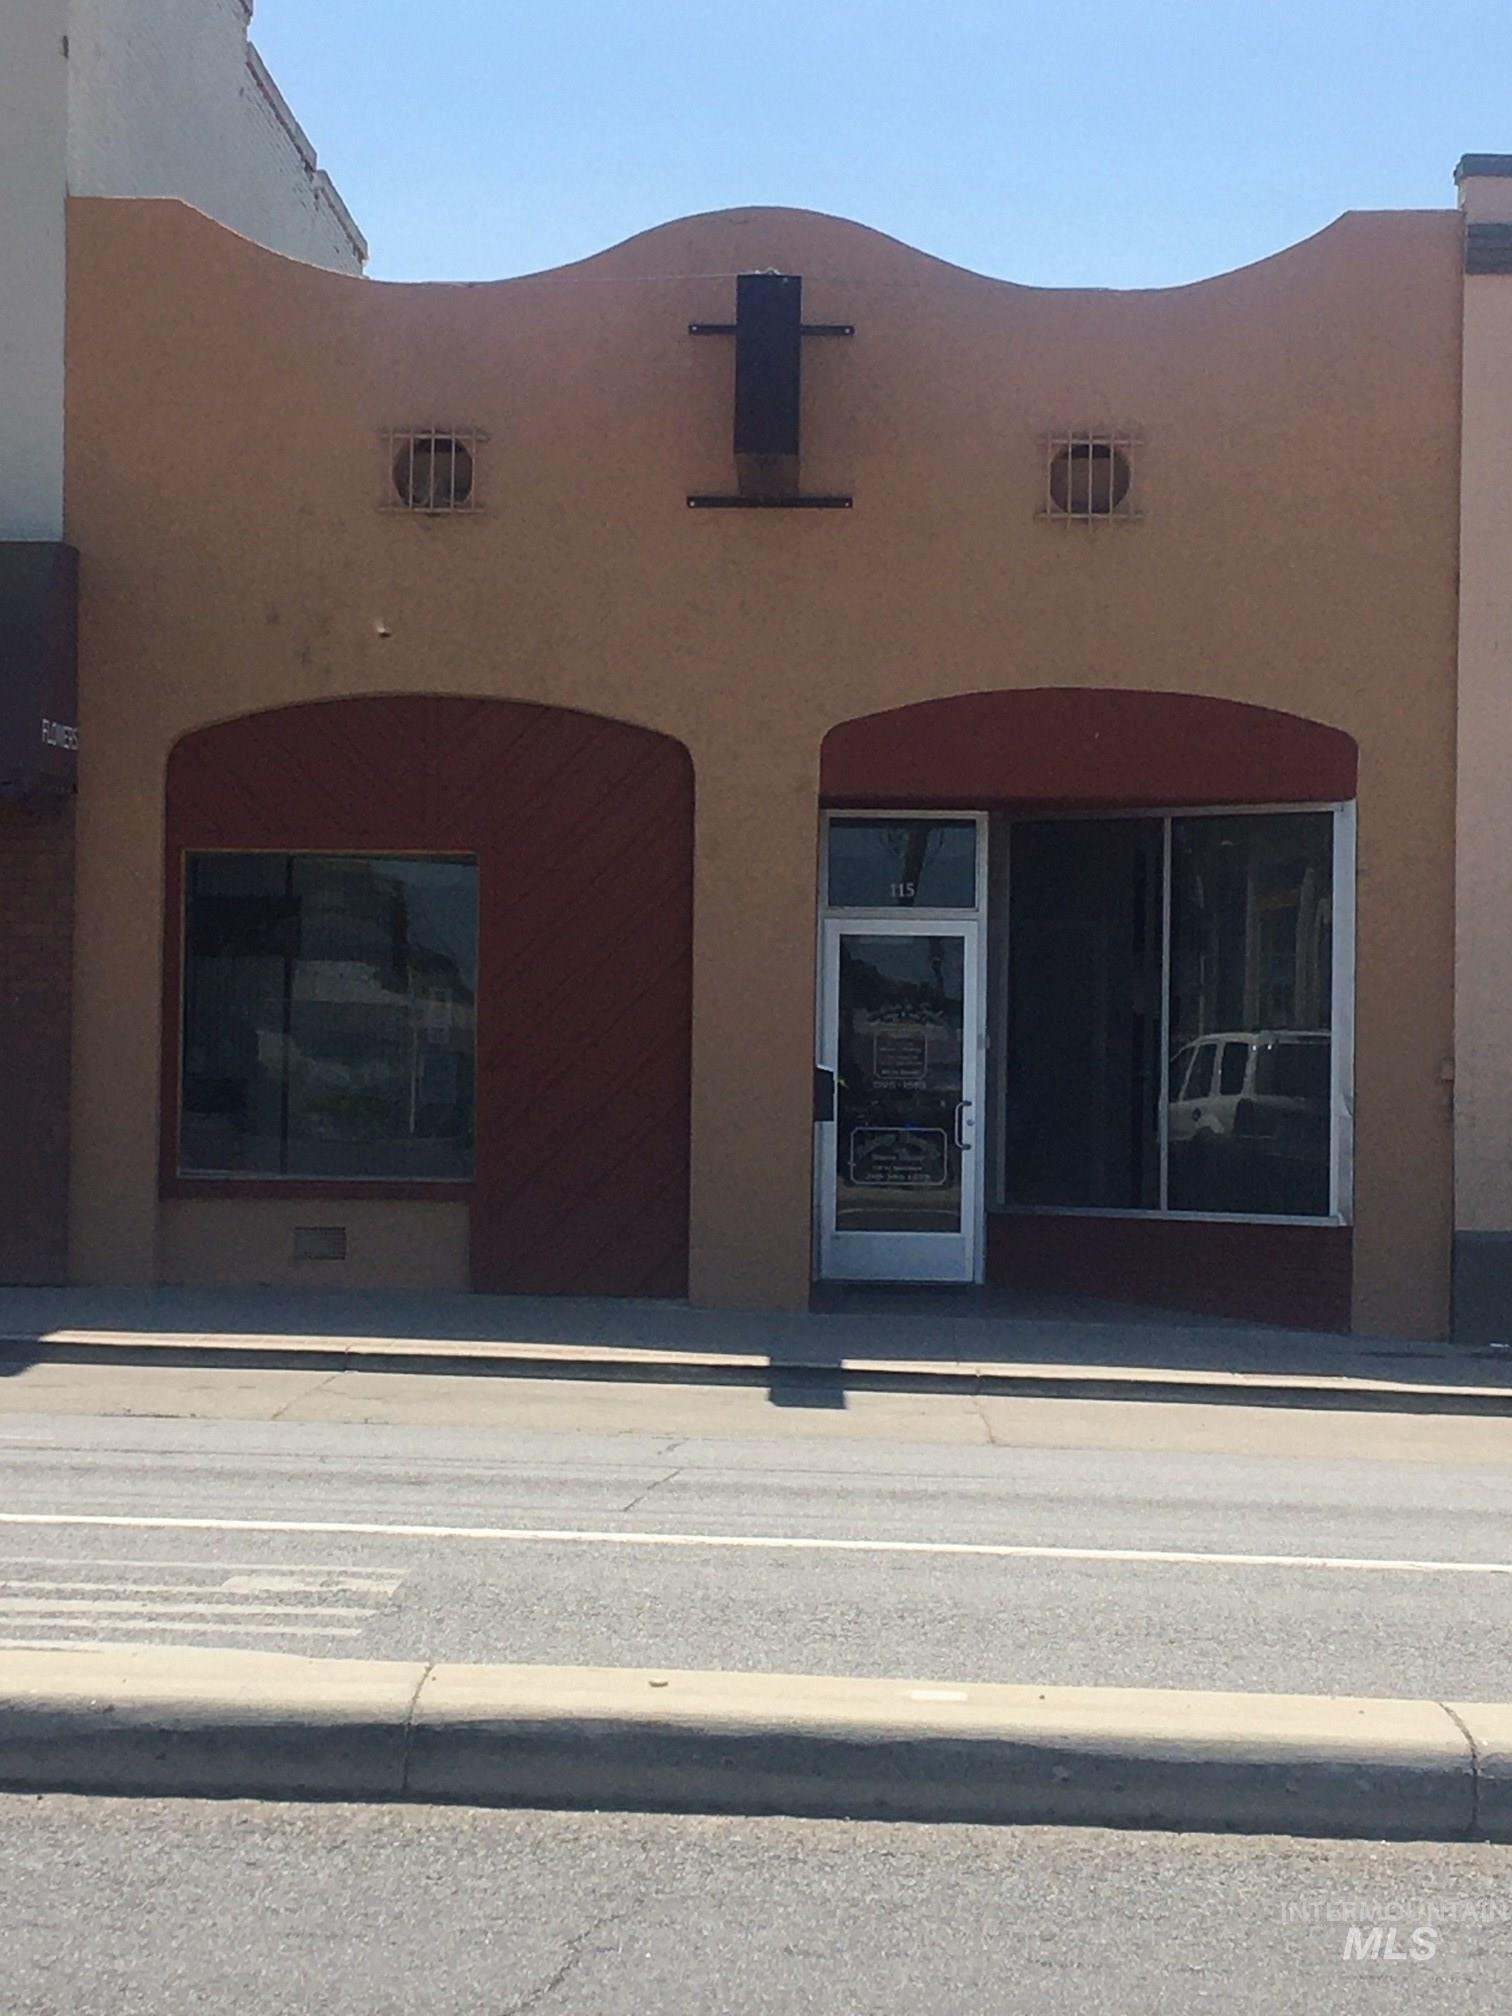 115 Main St. W., Jerome, Idaho 83338, Business/Commercial For Sale, Price $135,000, 98774648